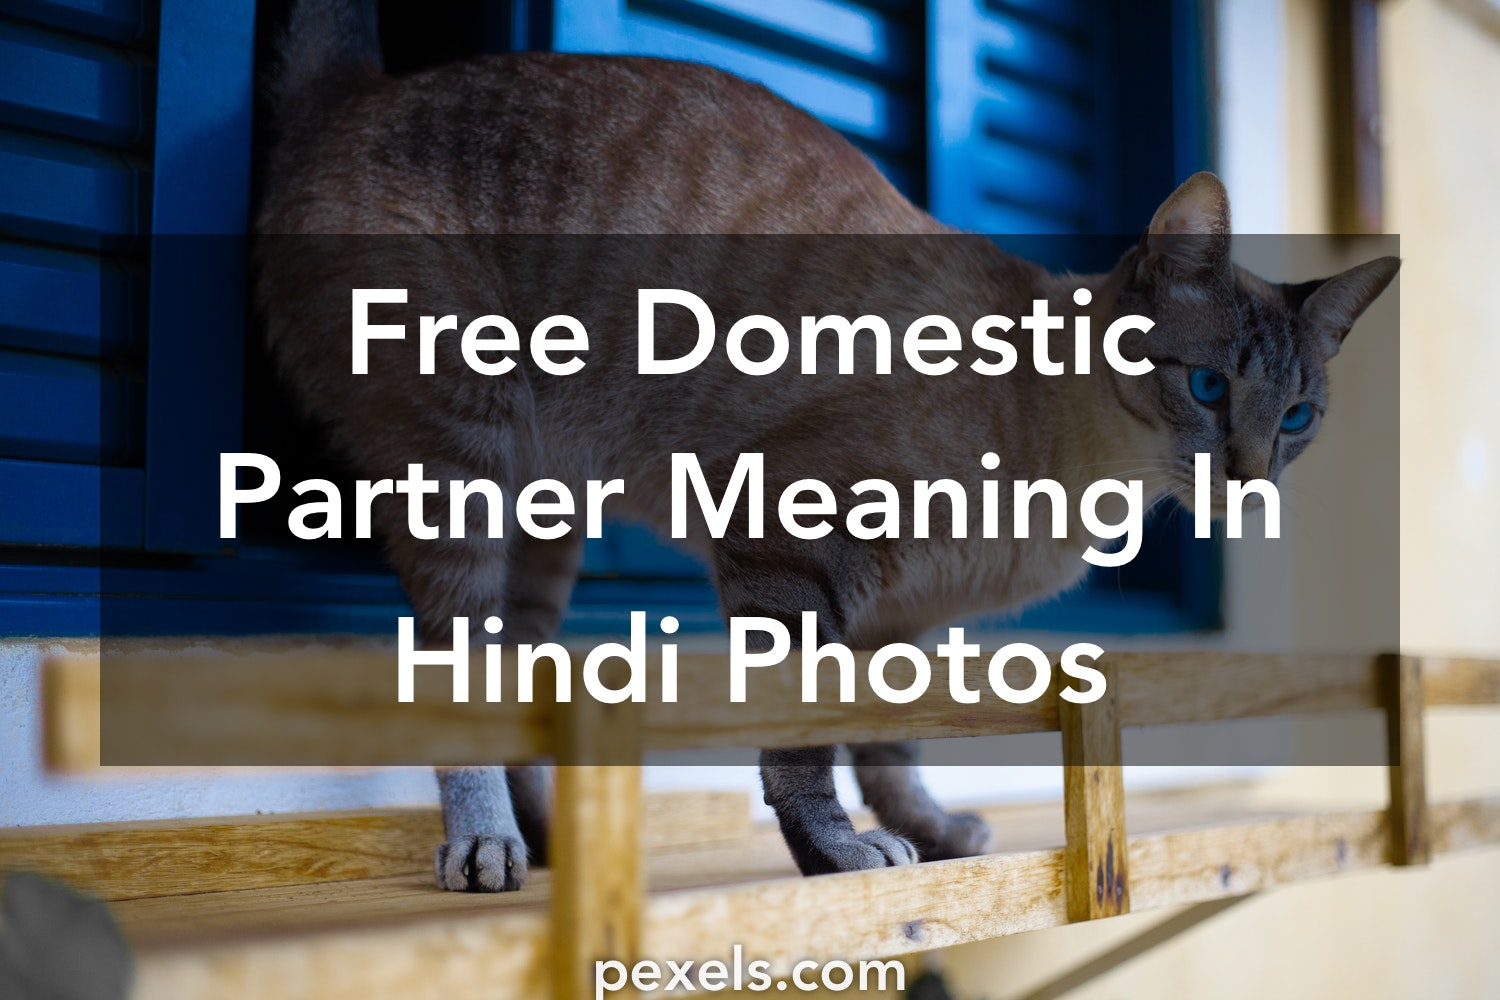 1000+ Amazing Domestic Partner Meaning In Hindi Photos